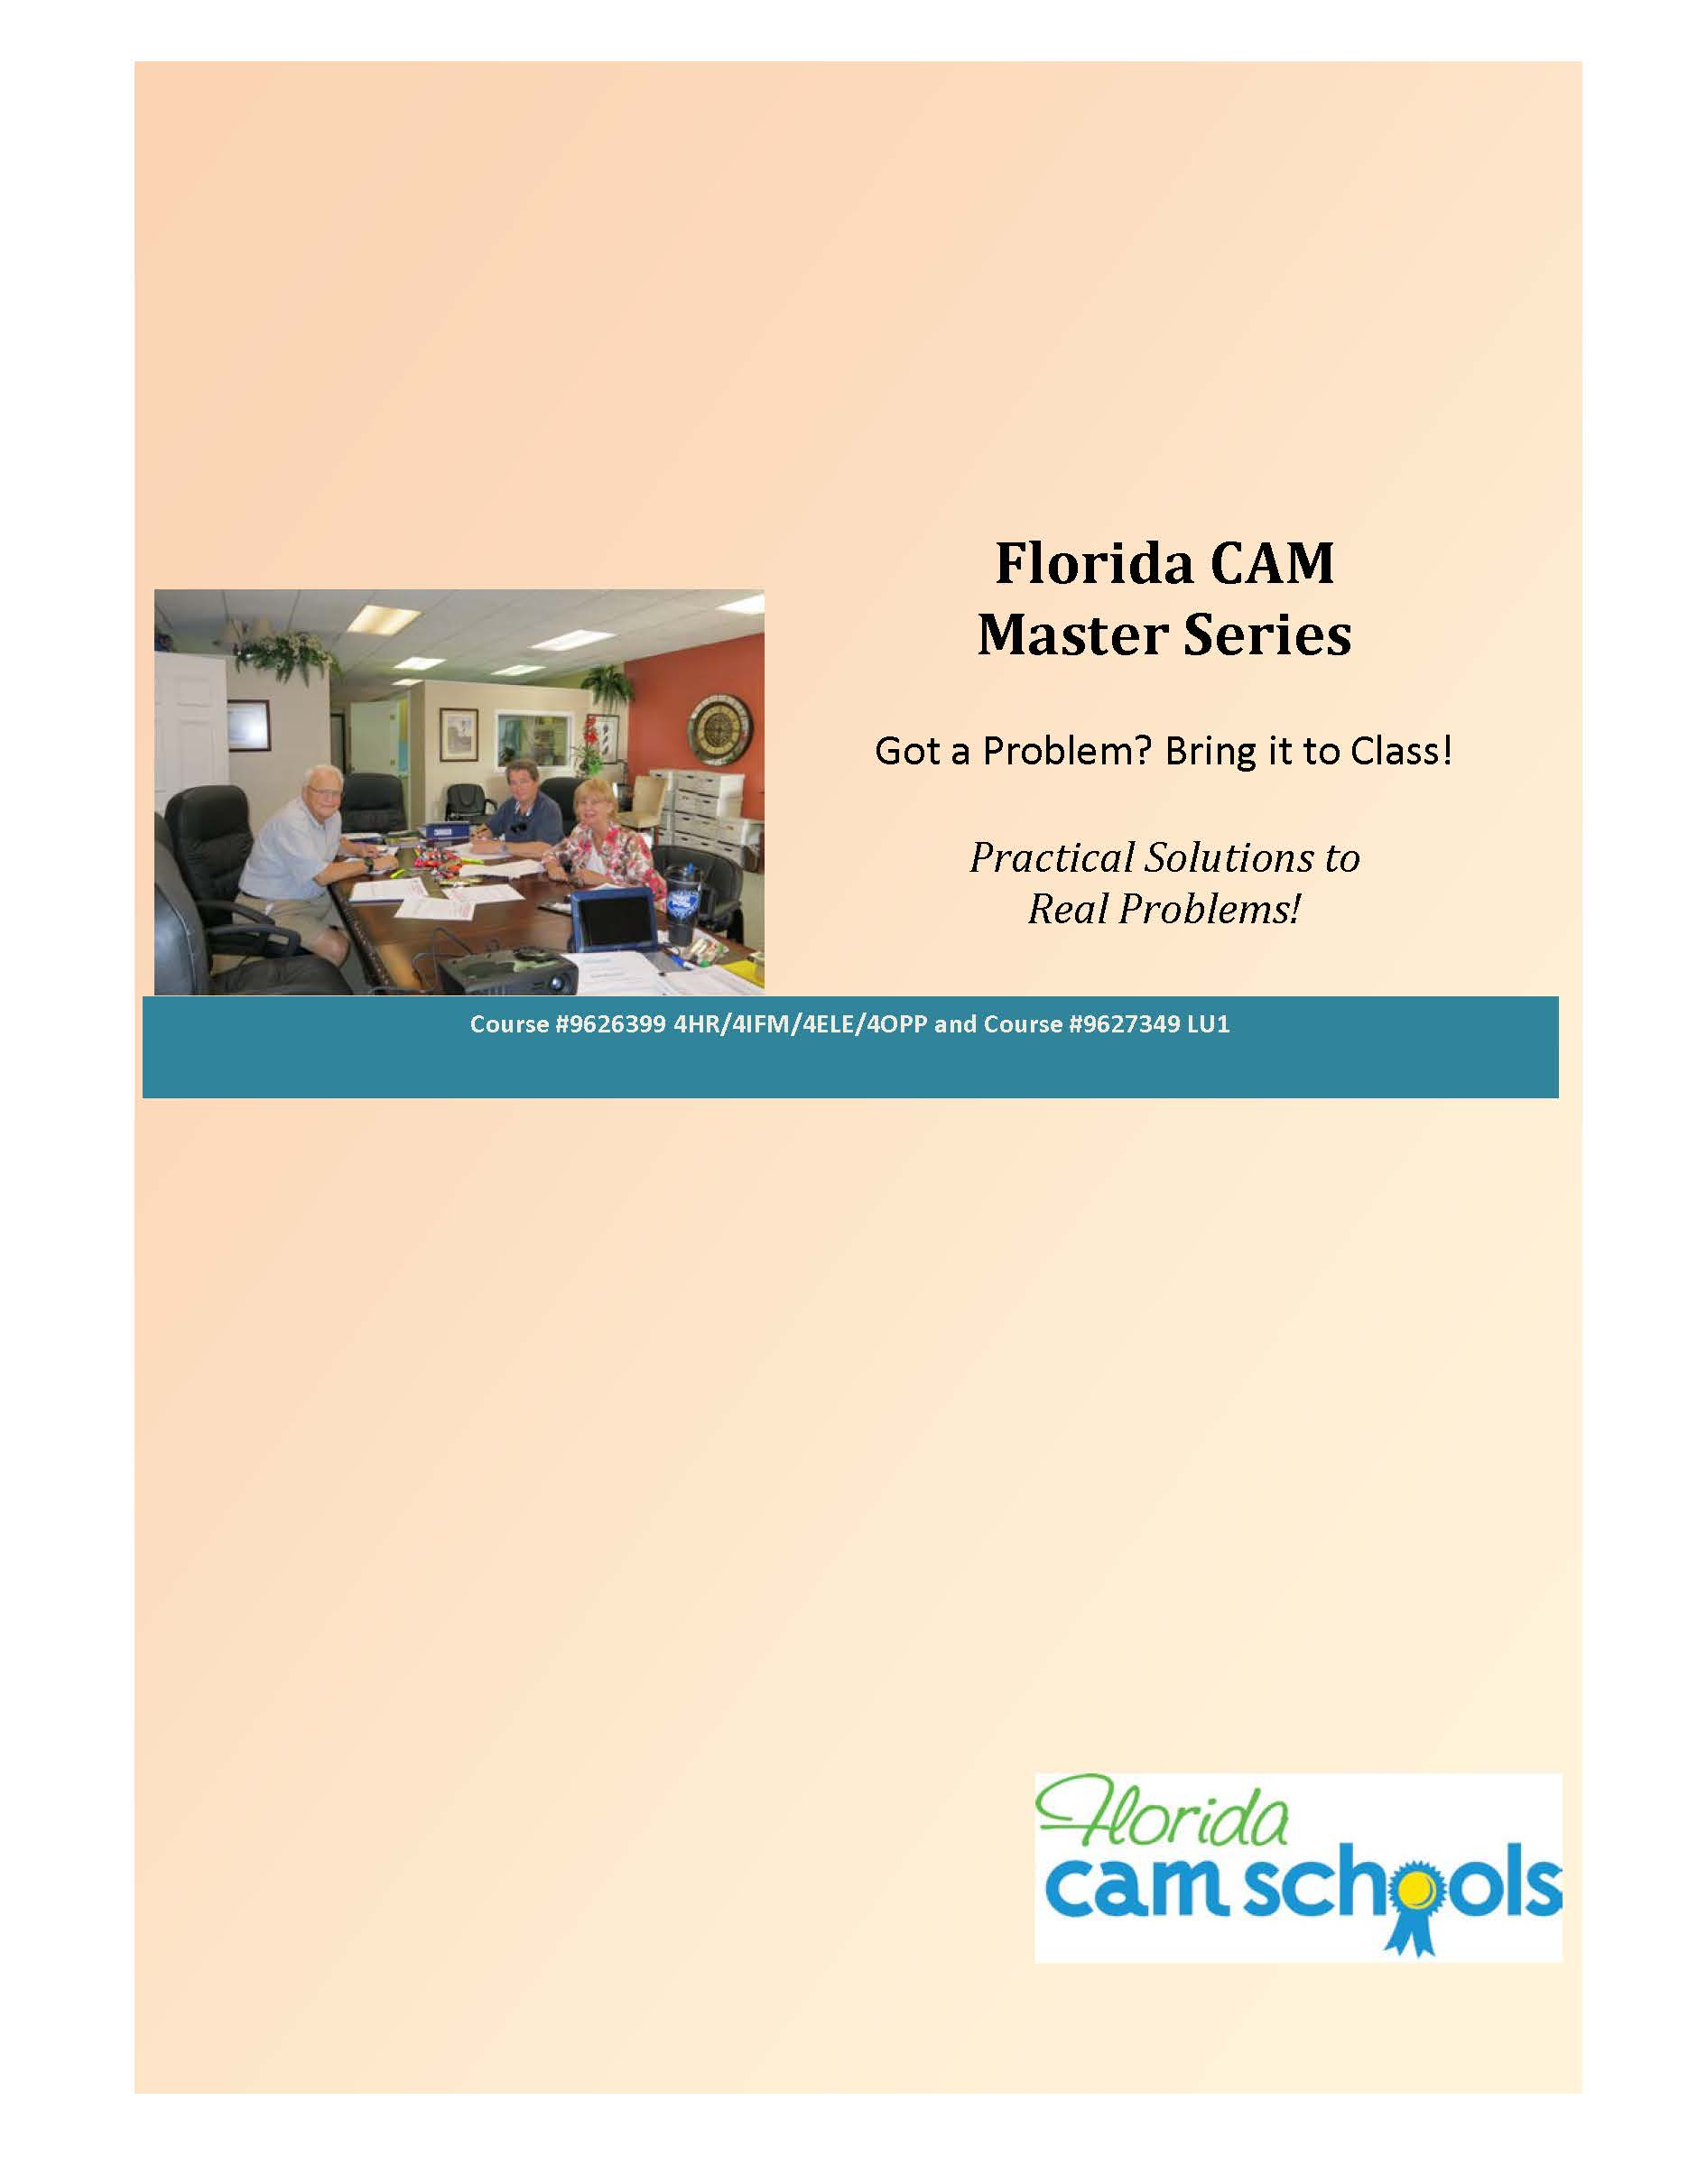 Florida CAM Master Series (manual only)